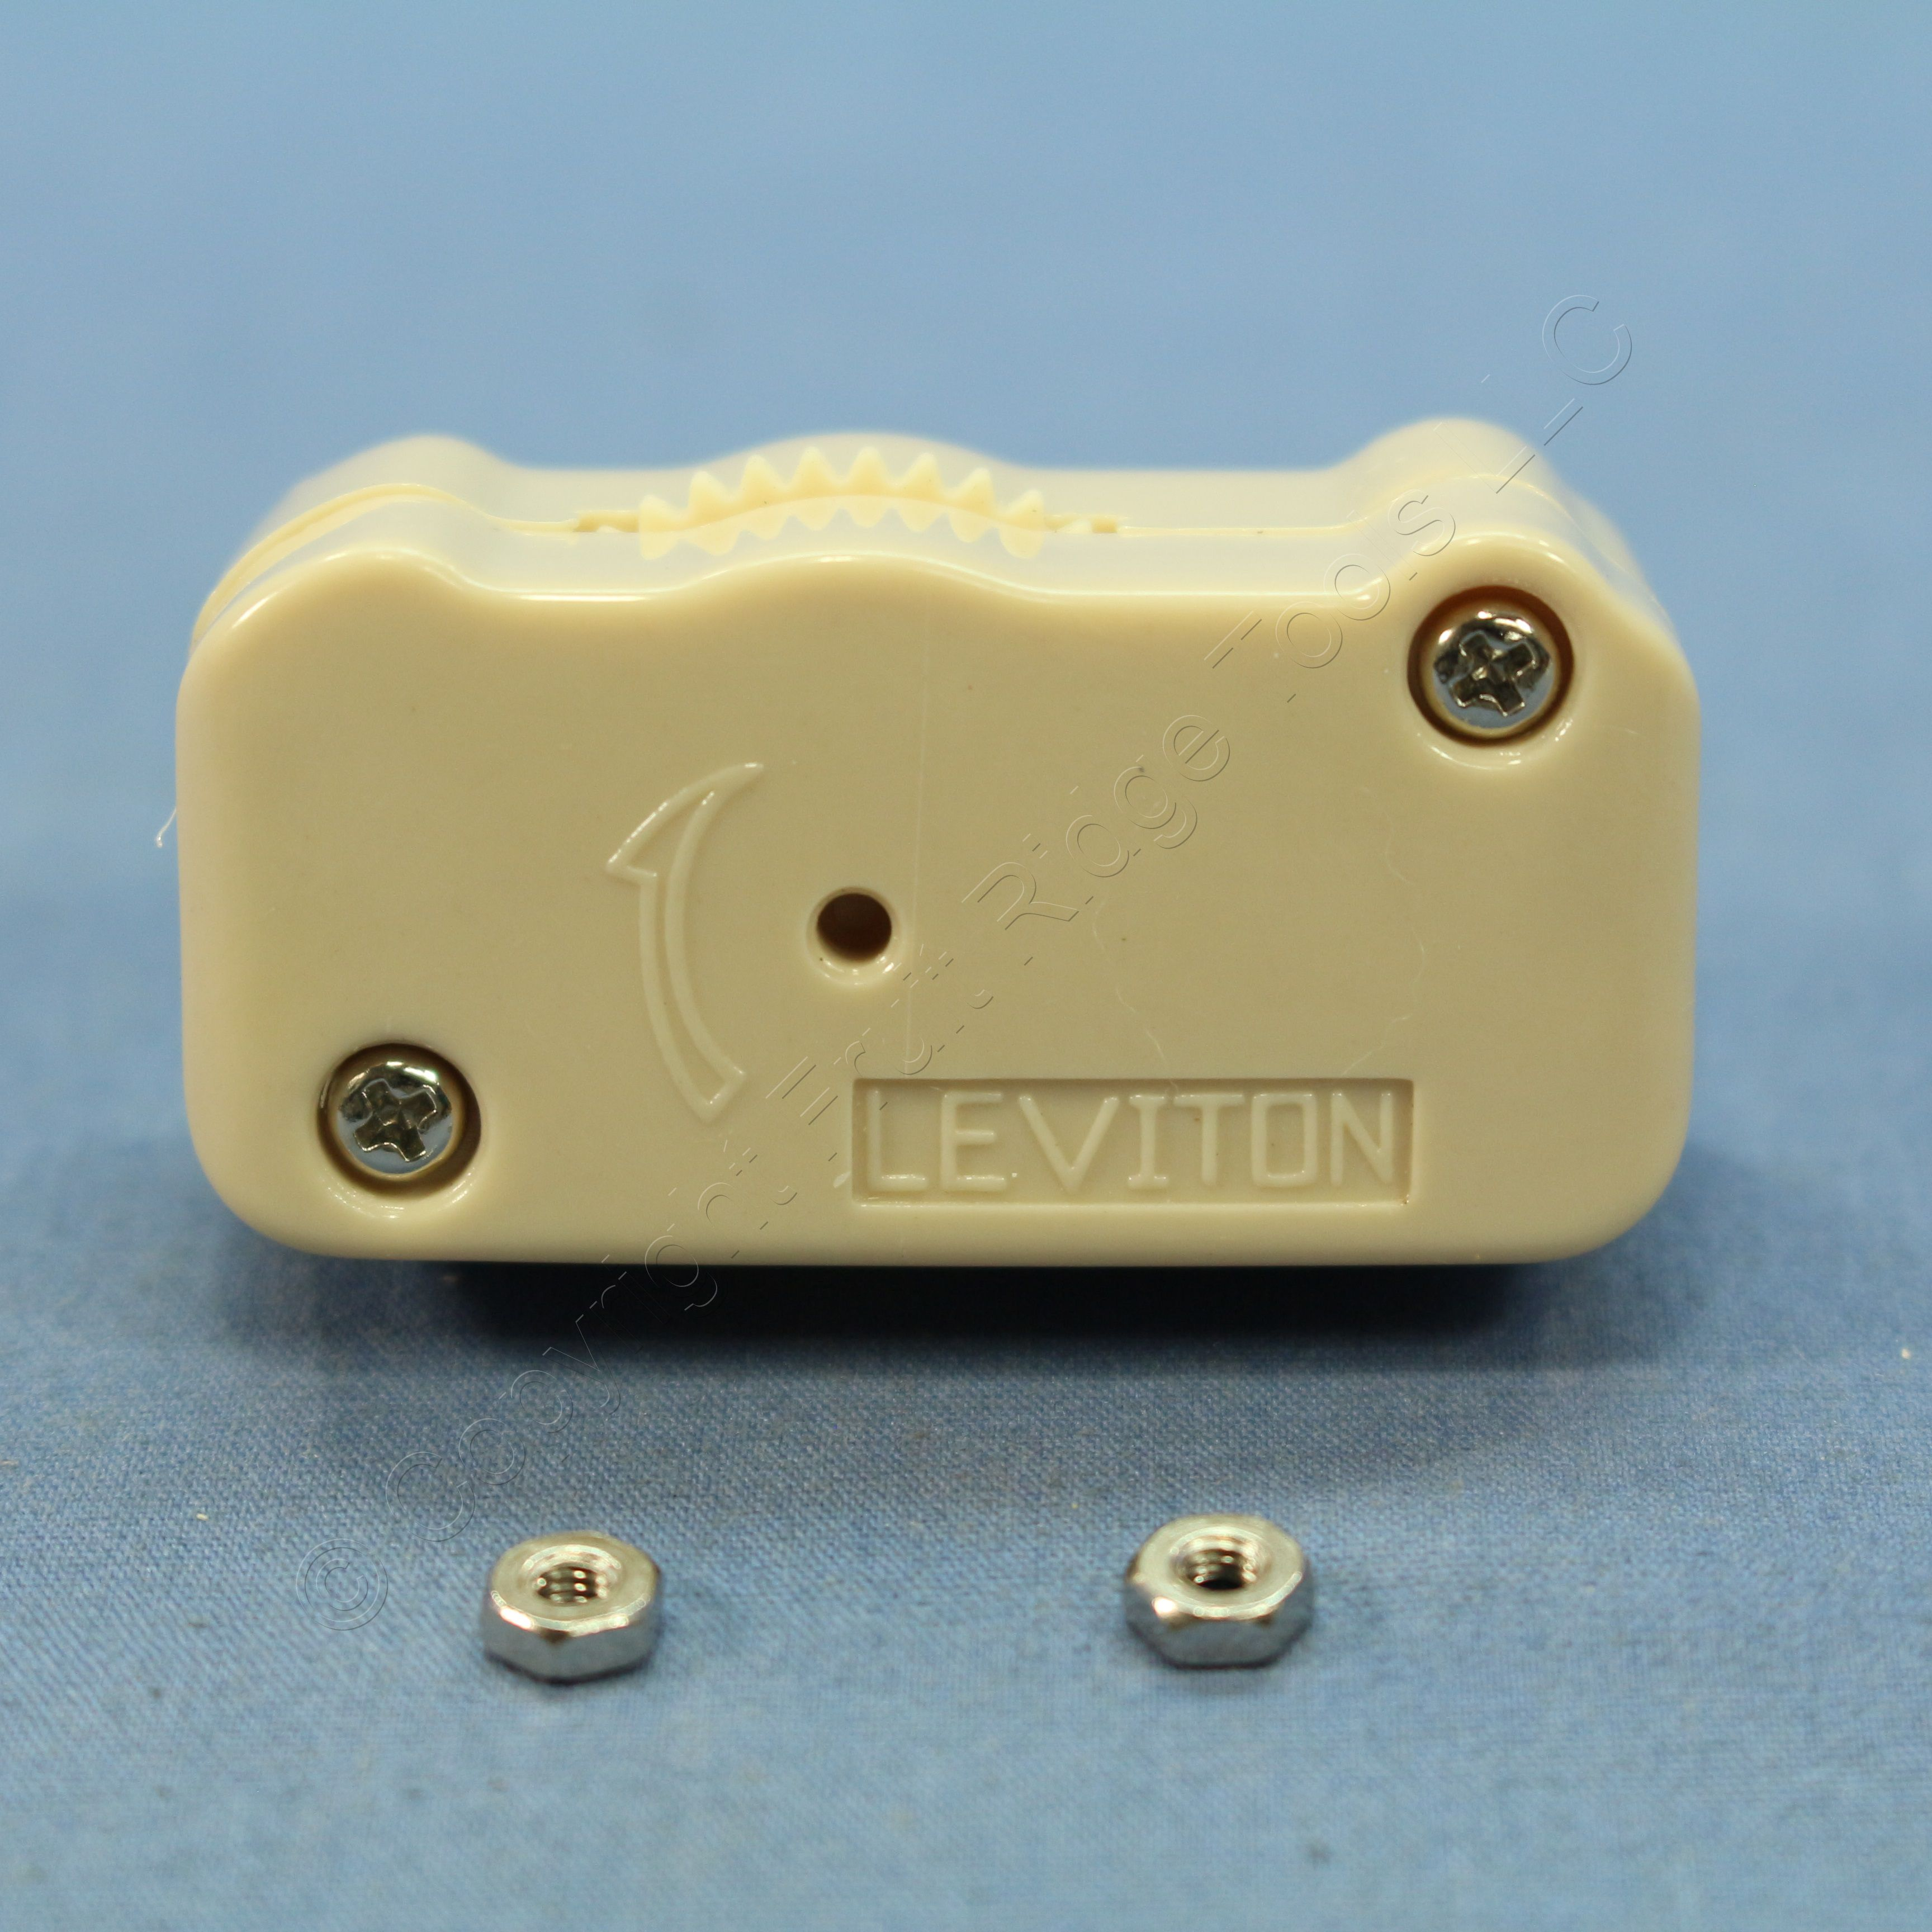 Leviton Ivory 3-Position HI-LO-OFF Lamp Cord Dimmer Switches 200W ...